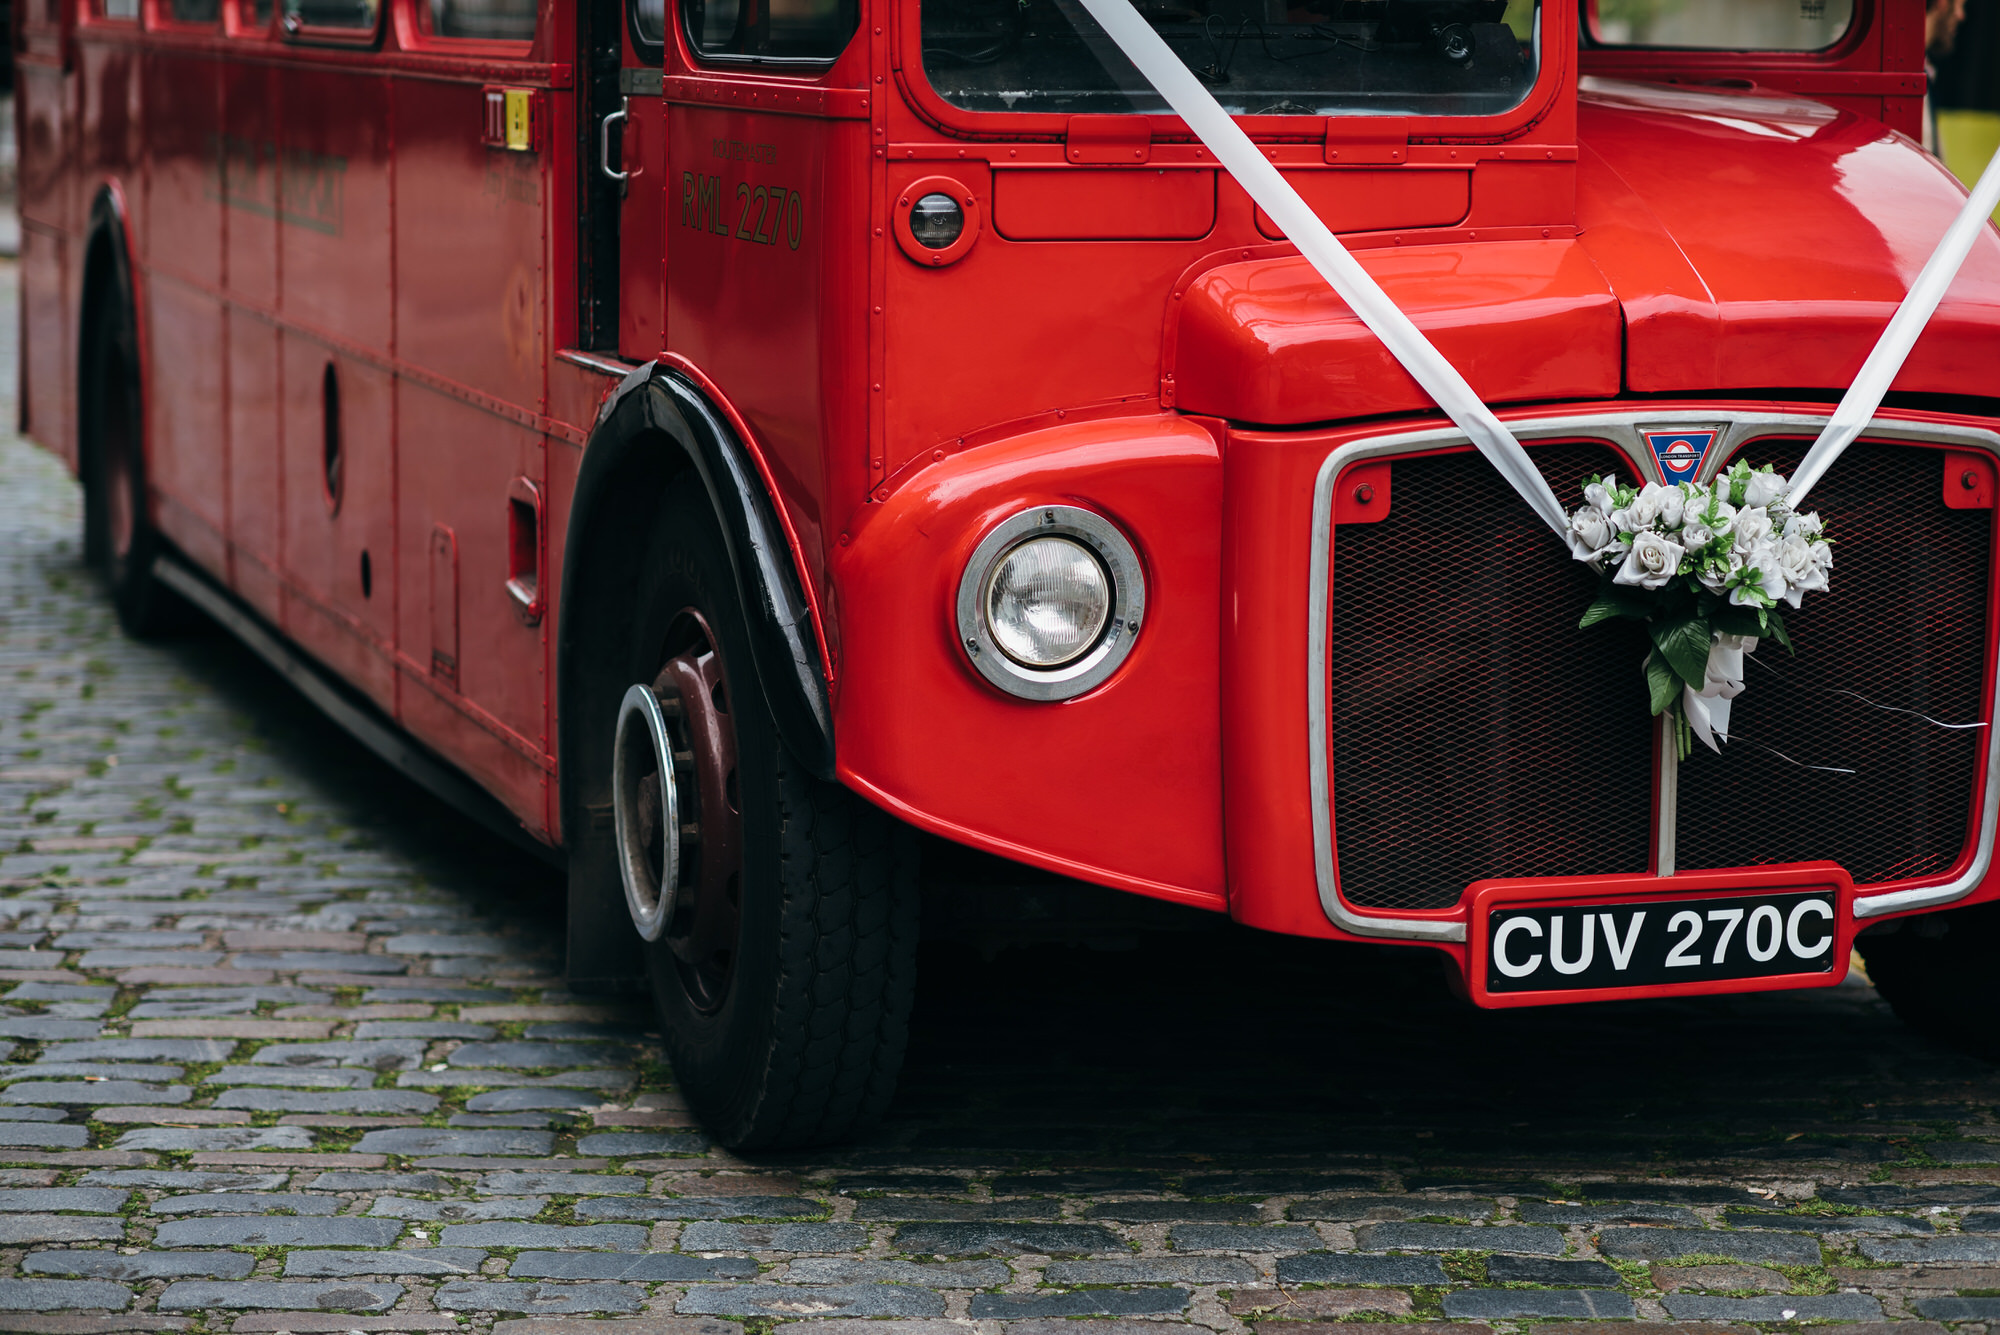 Routemaster bus London wedding